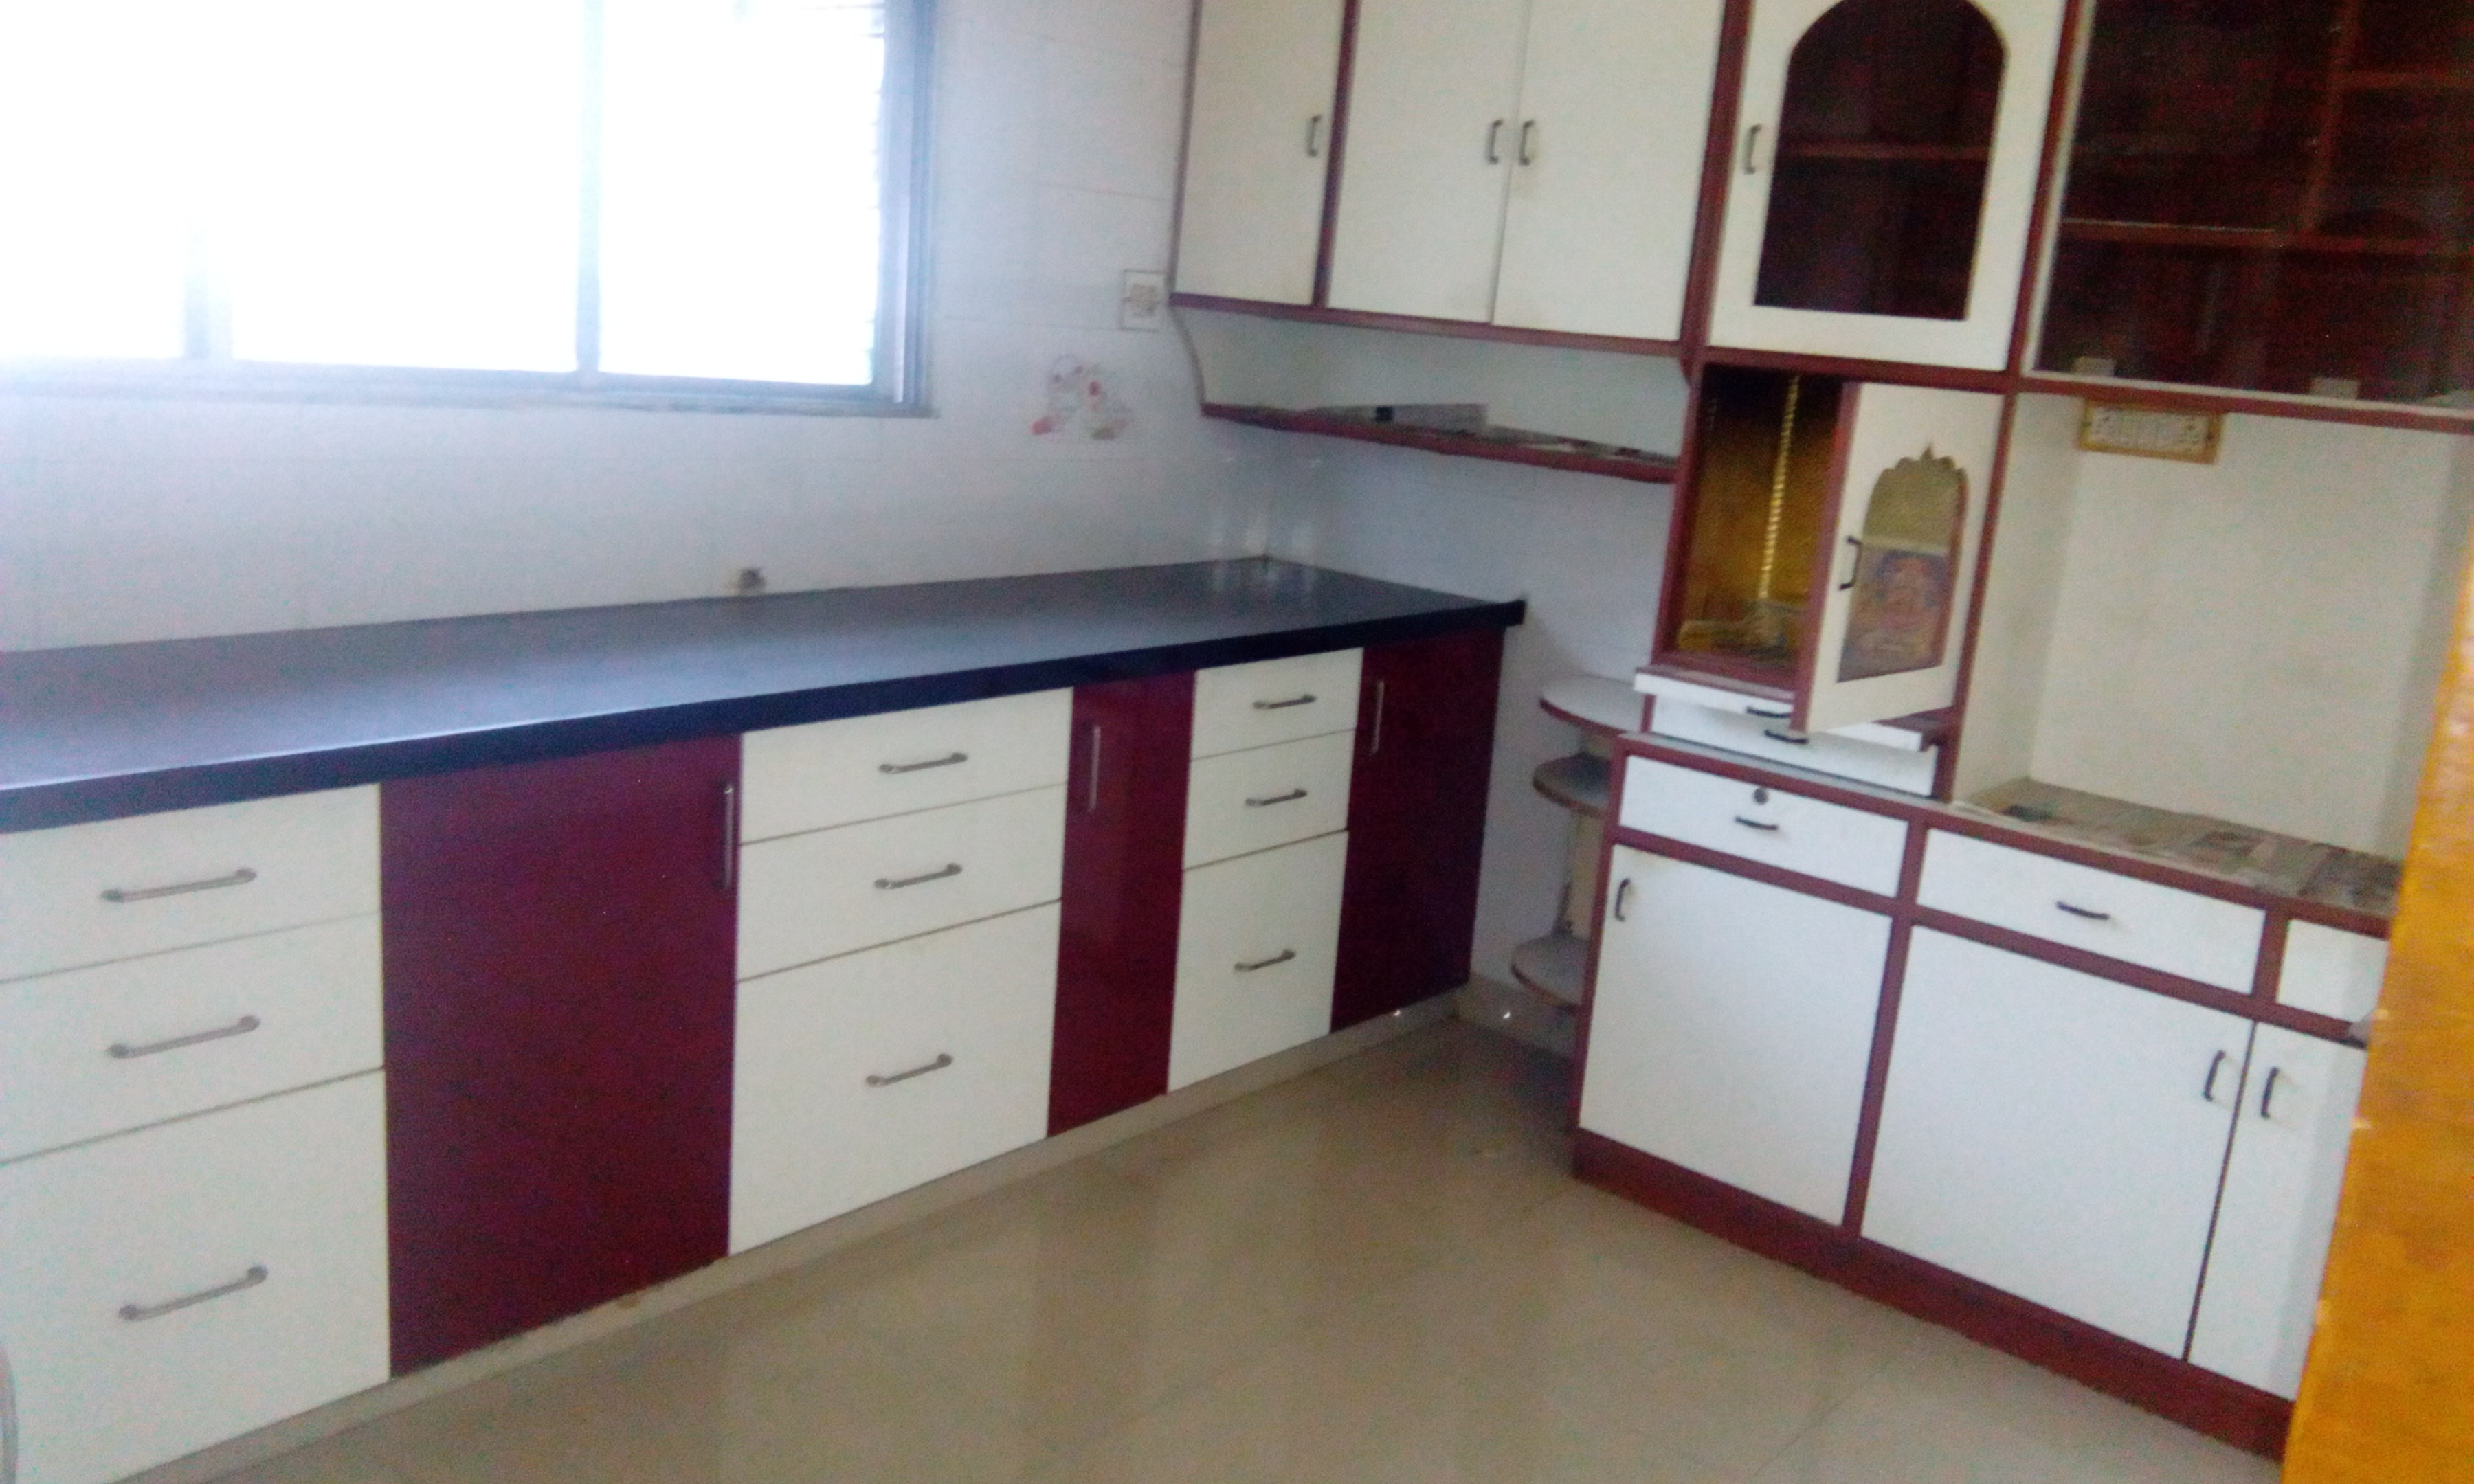 On ground floor 3bhk semifurnished with wardrobe, modular kitchen facility for rent 20000 at bajaj nagar